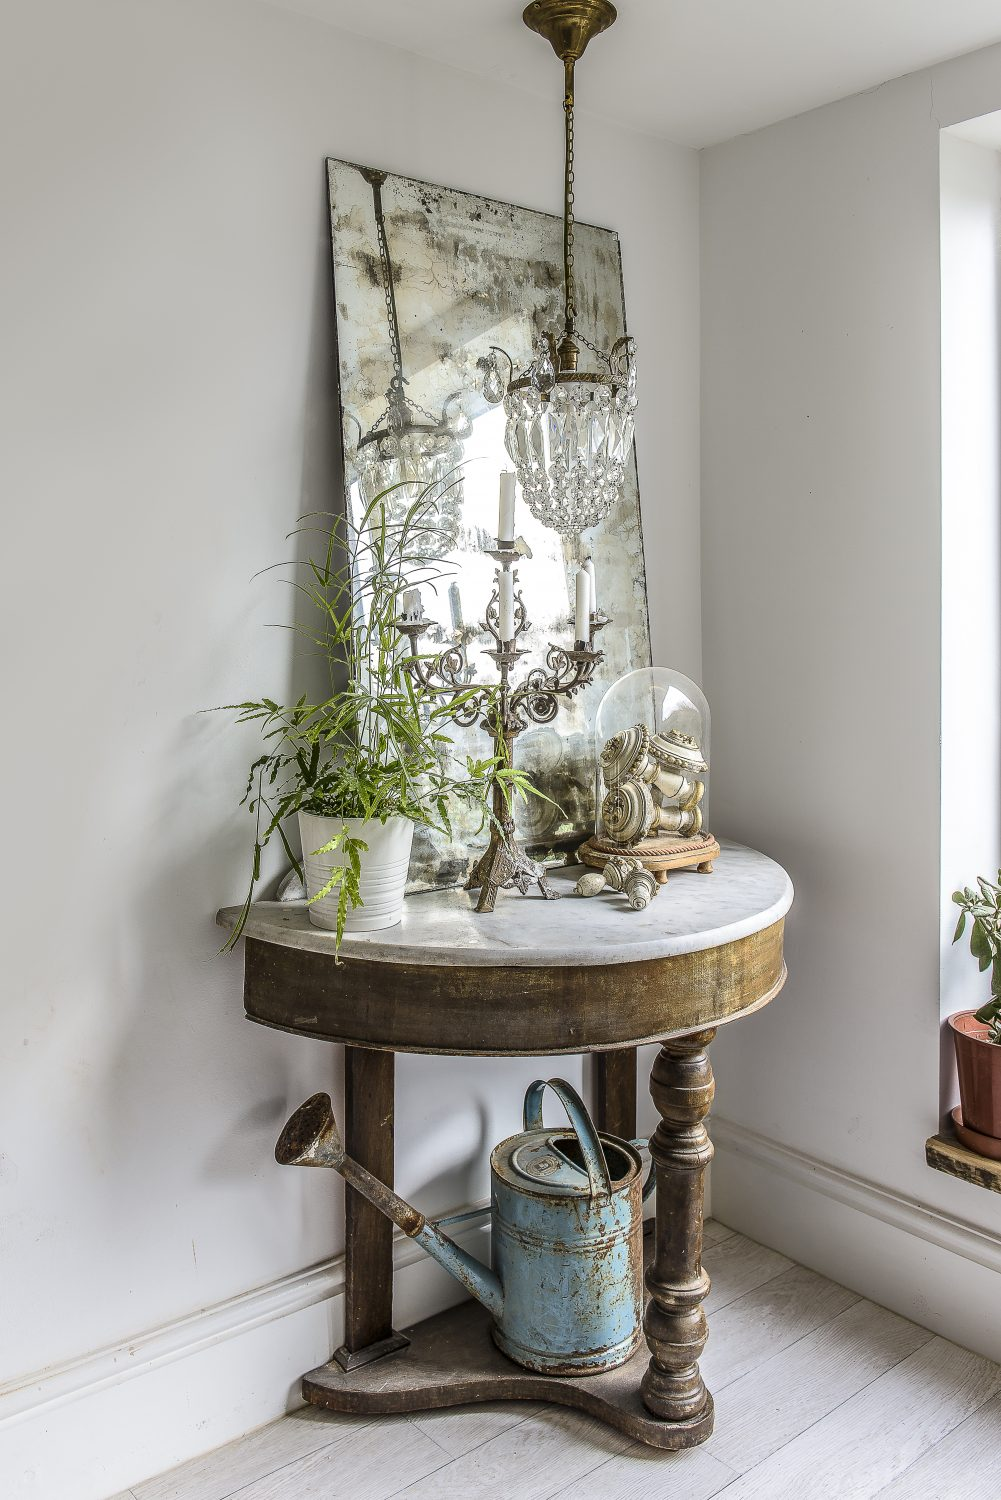 Vintage finds are grouped together on a marble-topped table in one corner of the dining room